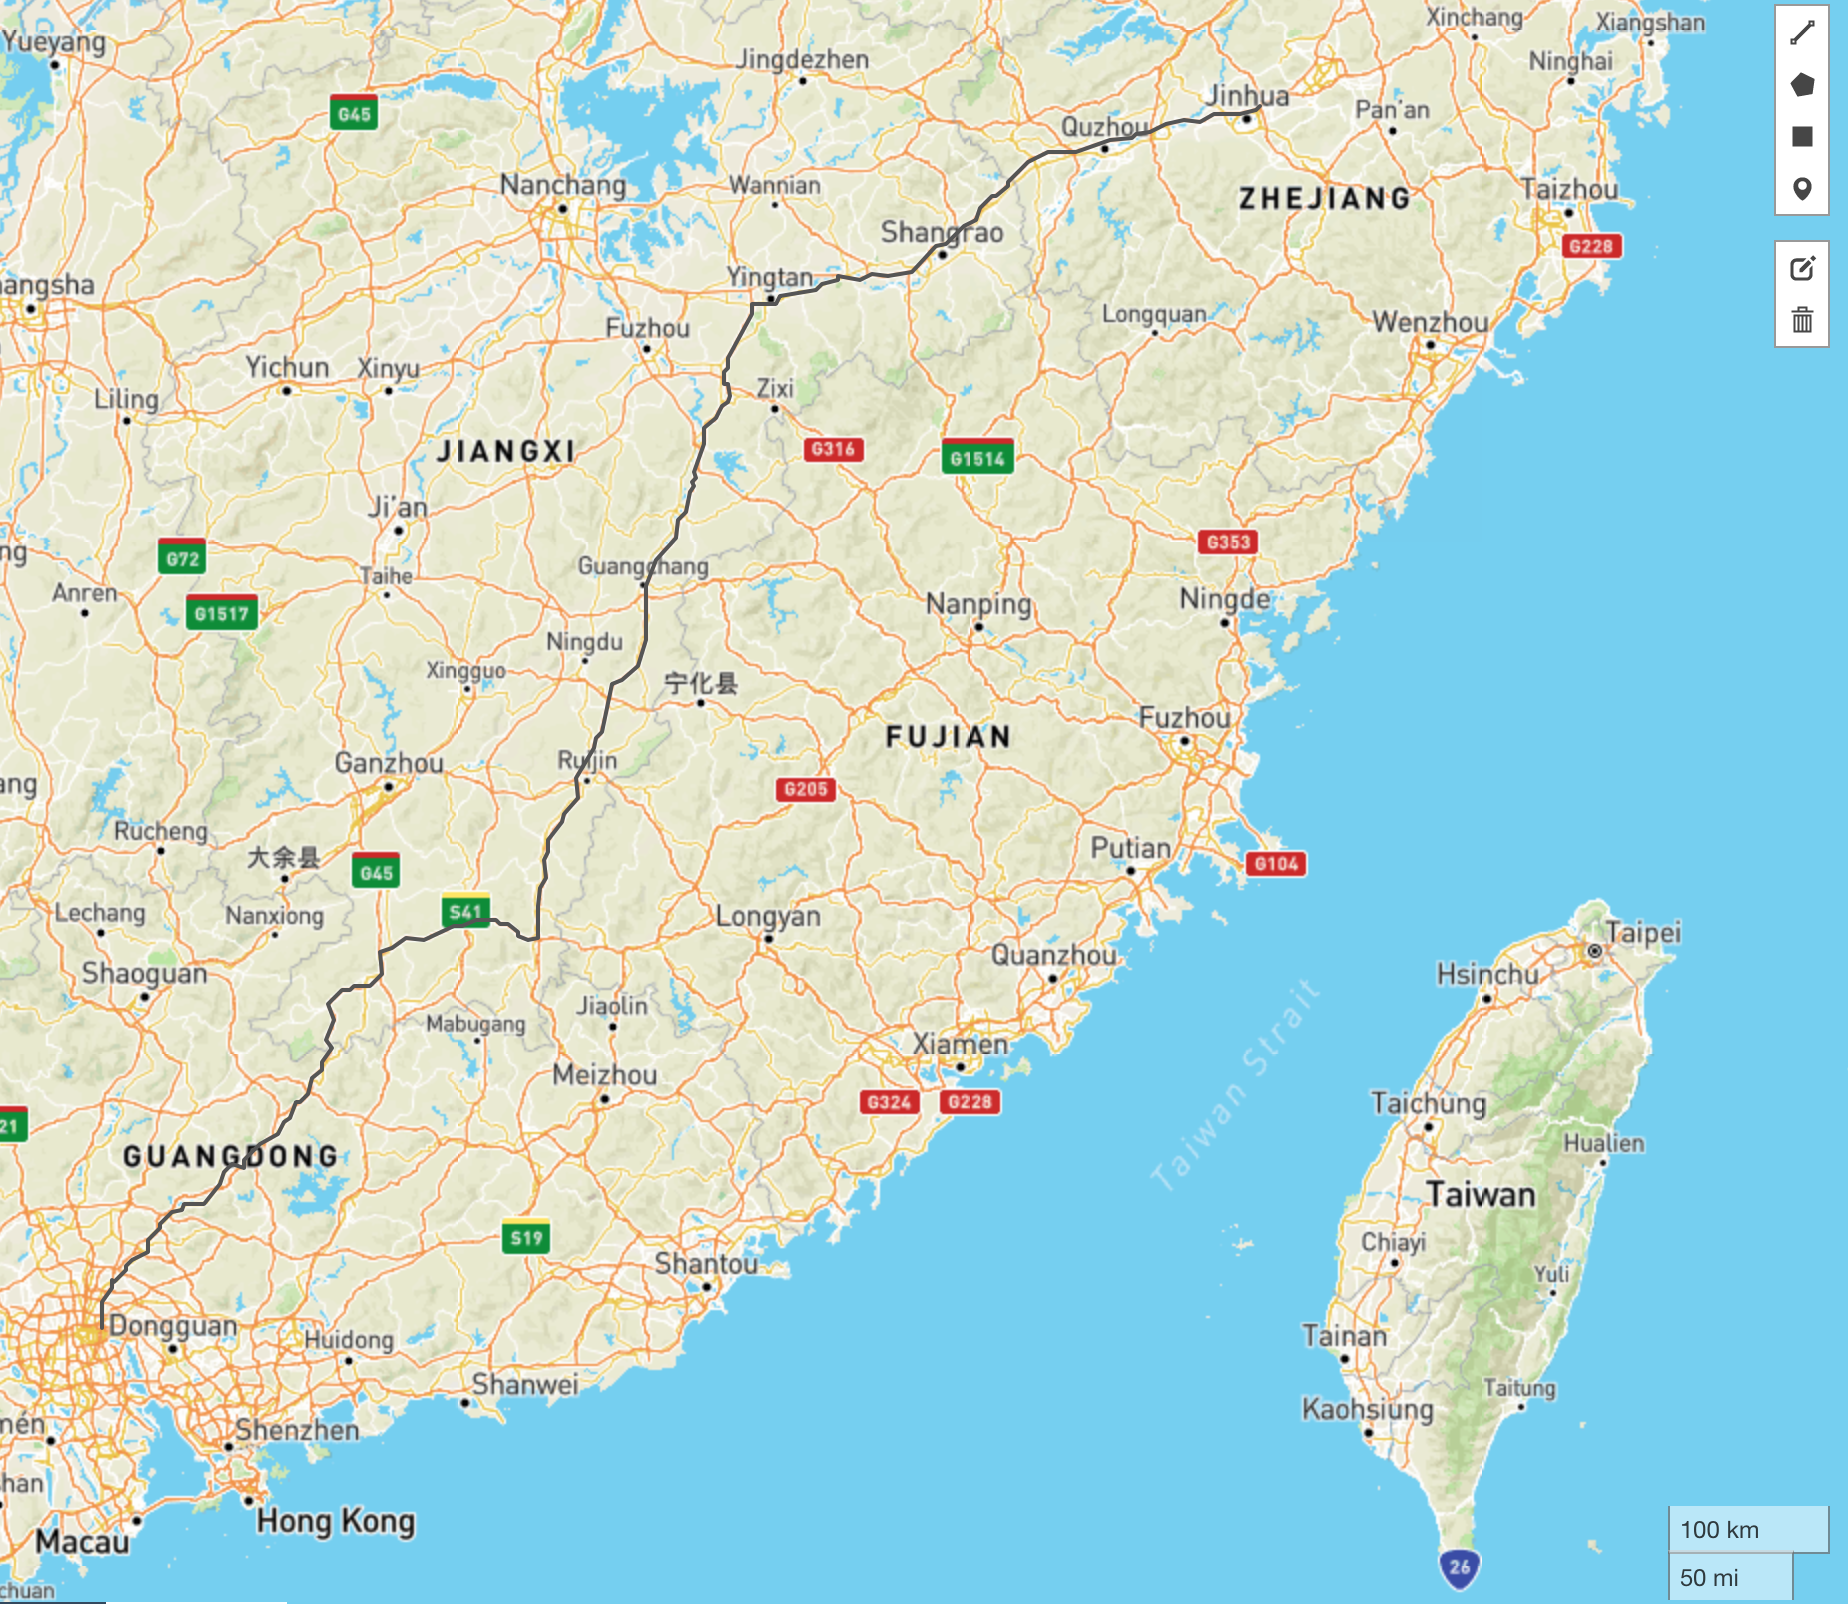 Sample route from our routing API for road in mainland China.